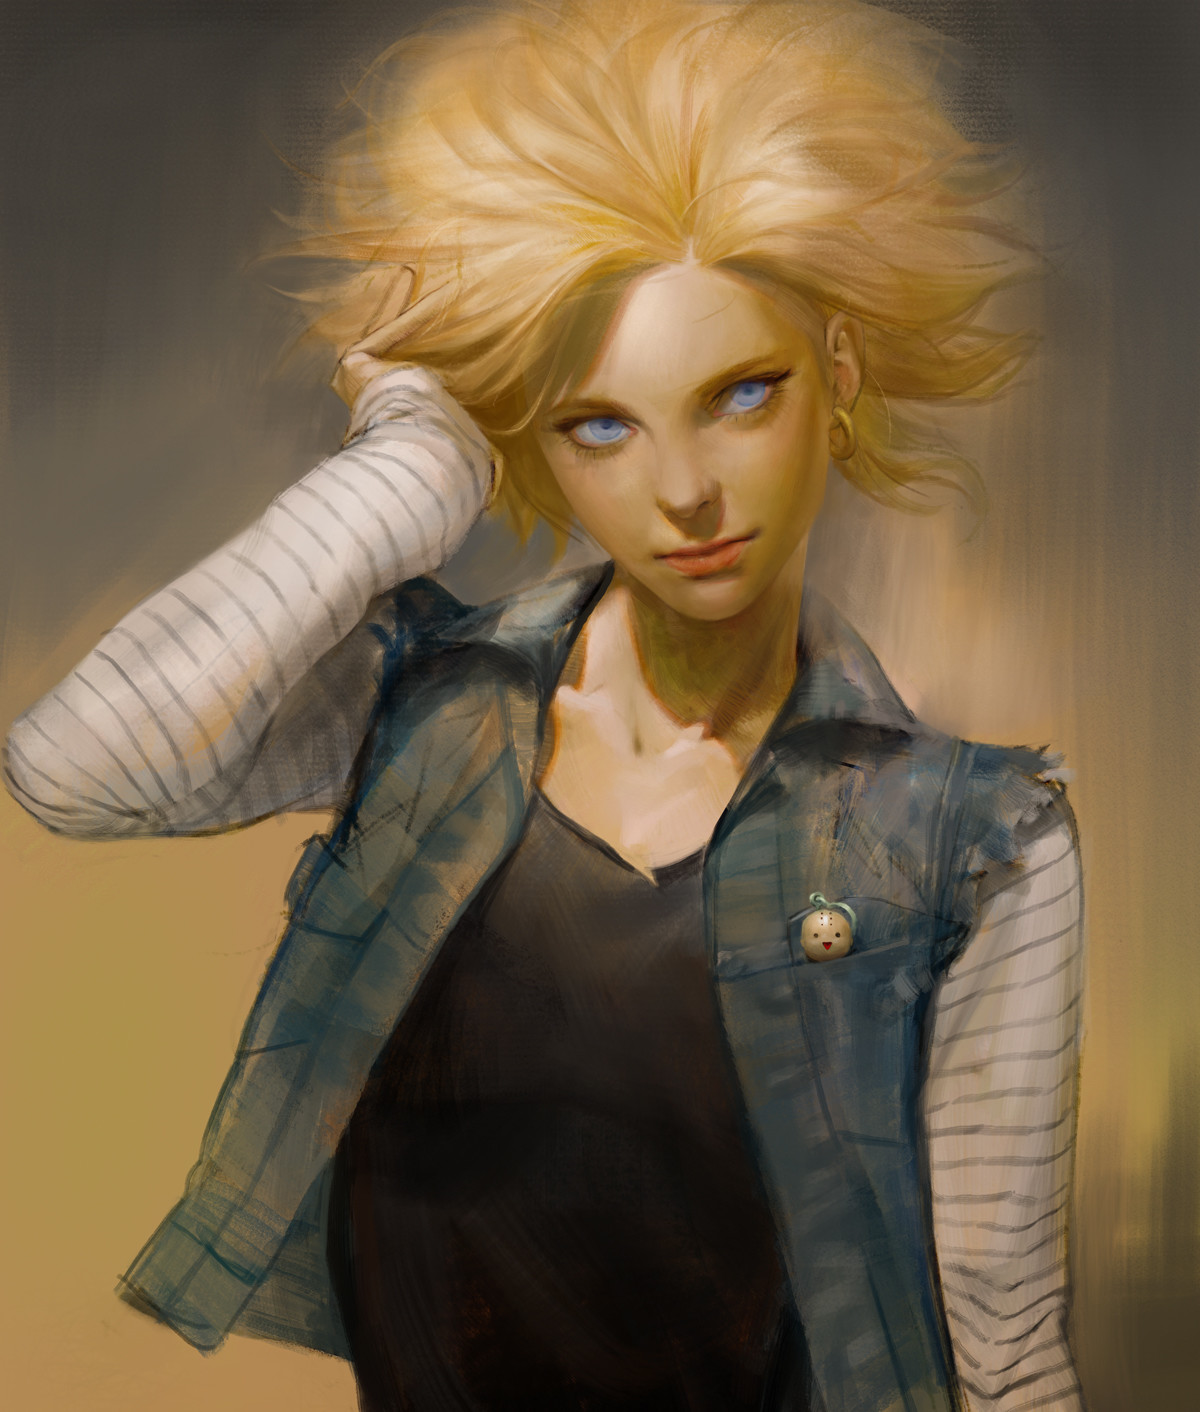 Android 18 By Sangsoo Jeong Dragon Ball Know Your Meme